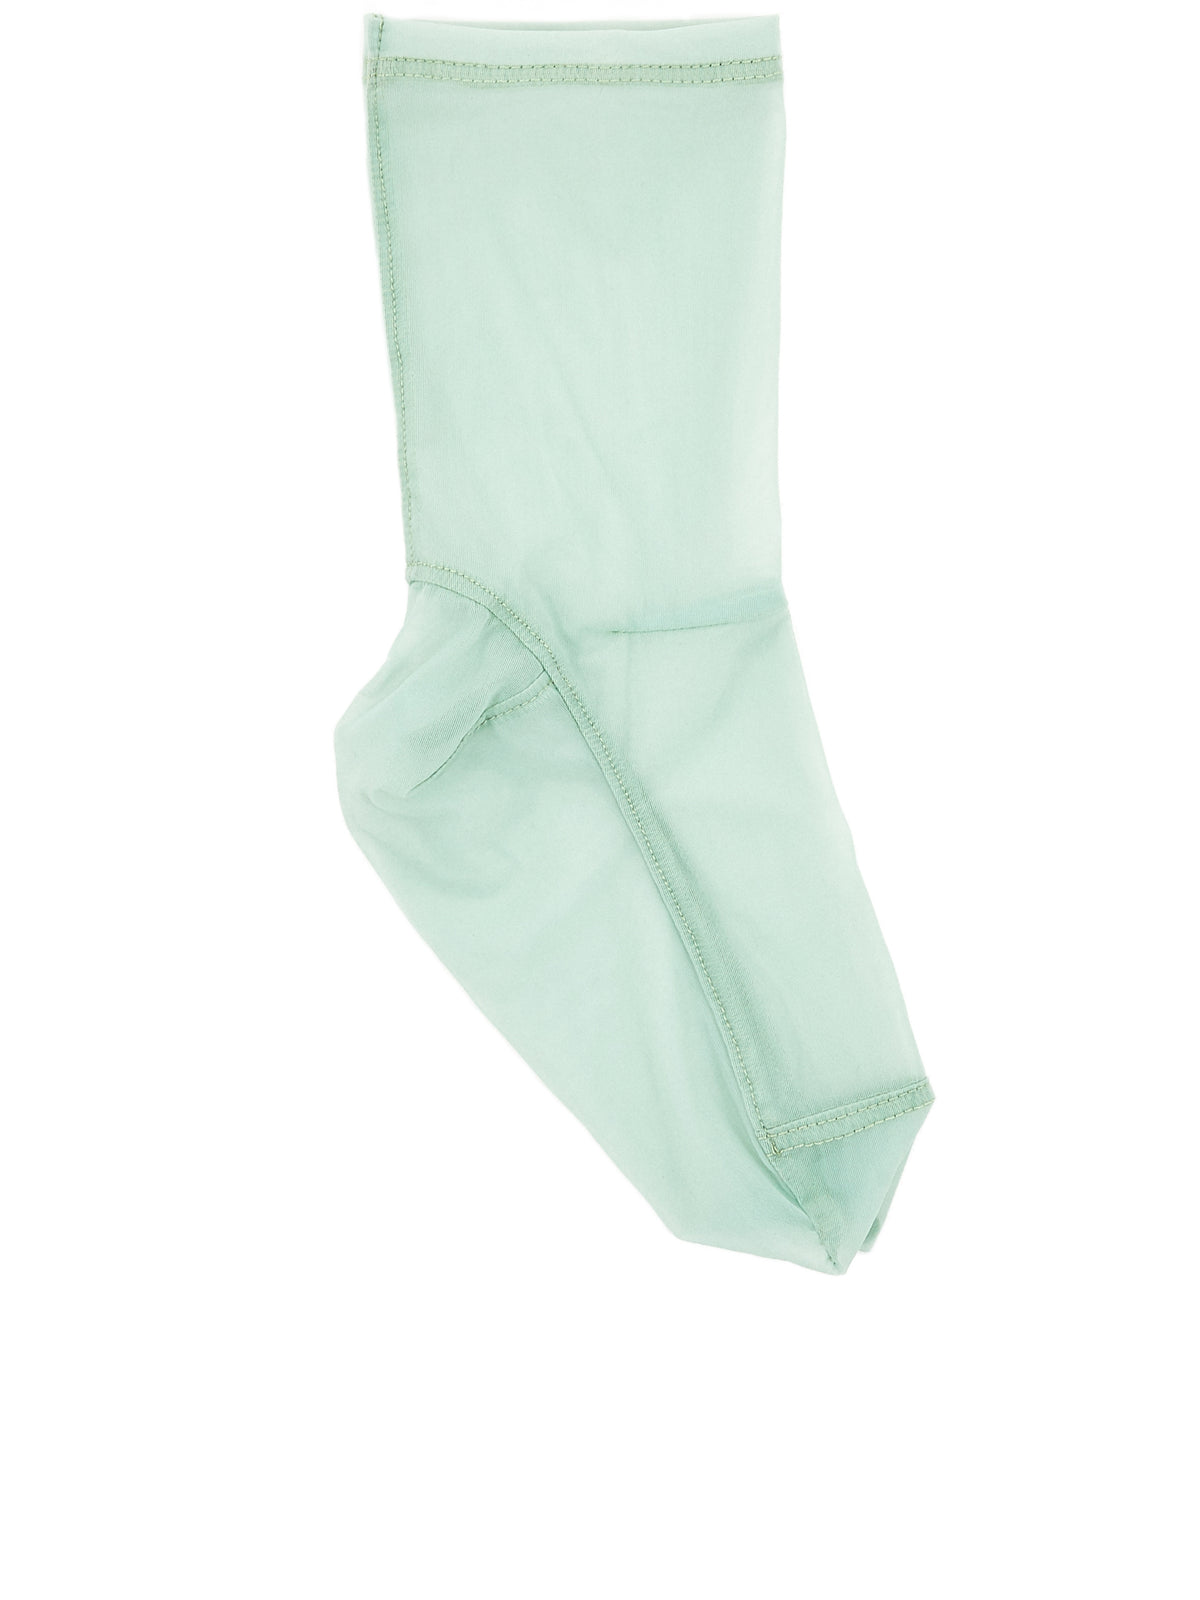 Mesh Anklet Socks (MESH-SOLID-MINT)